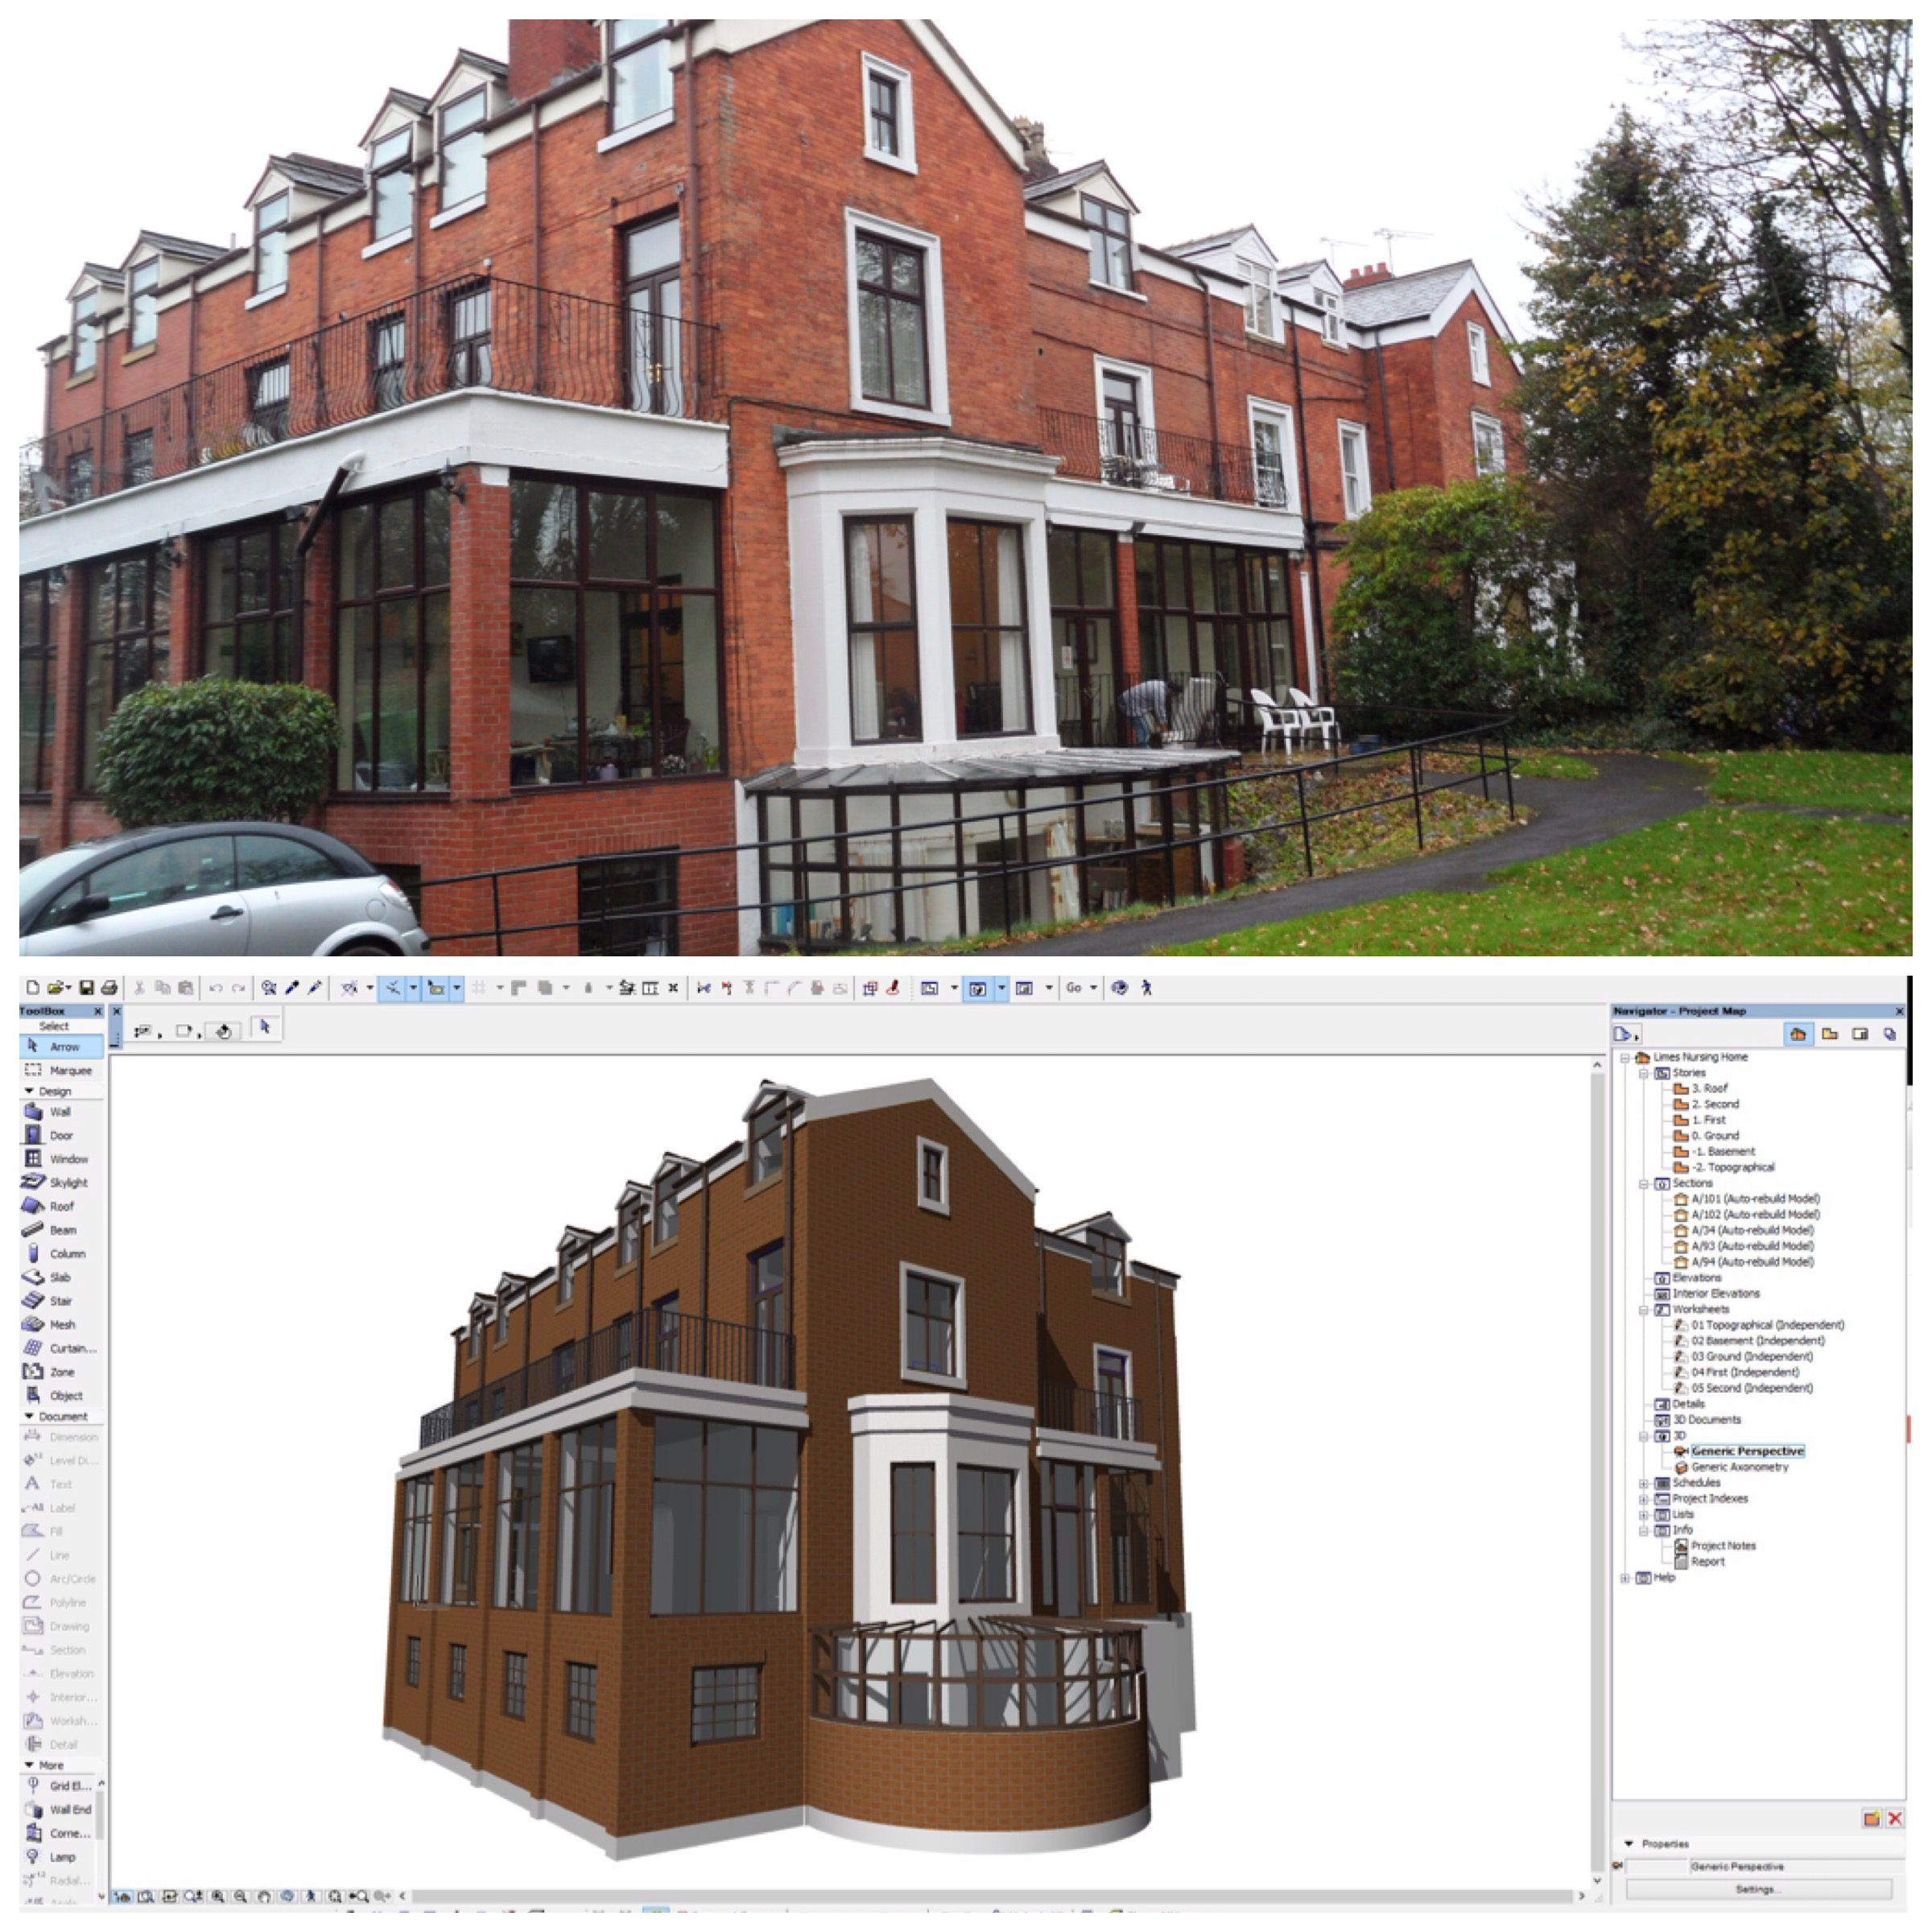 Archicad BIM model from survey data by ArchicadTeam.com